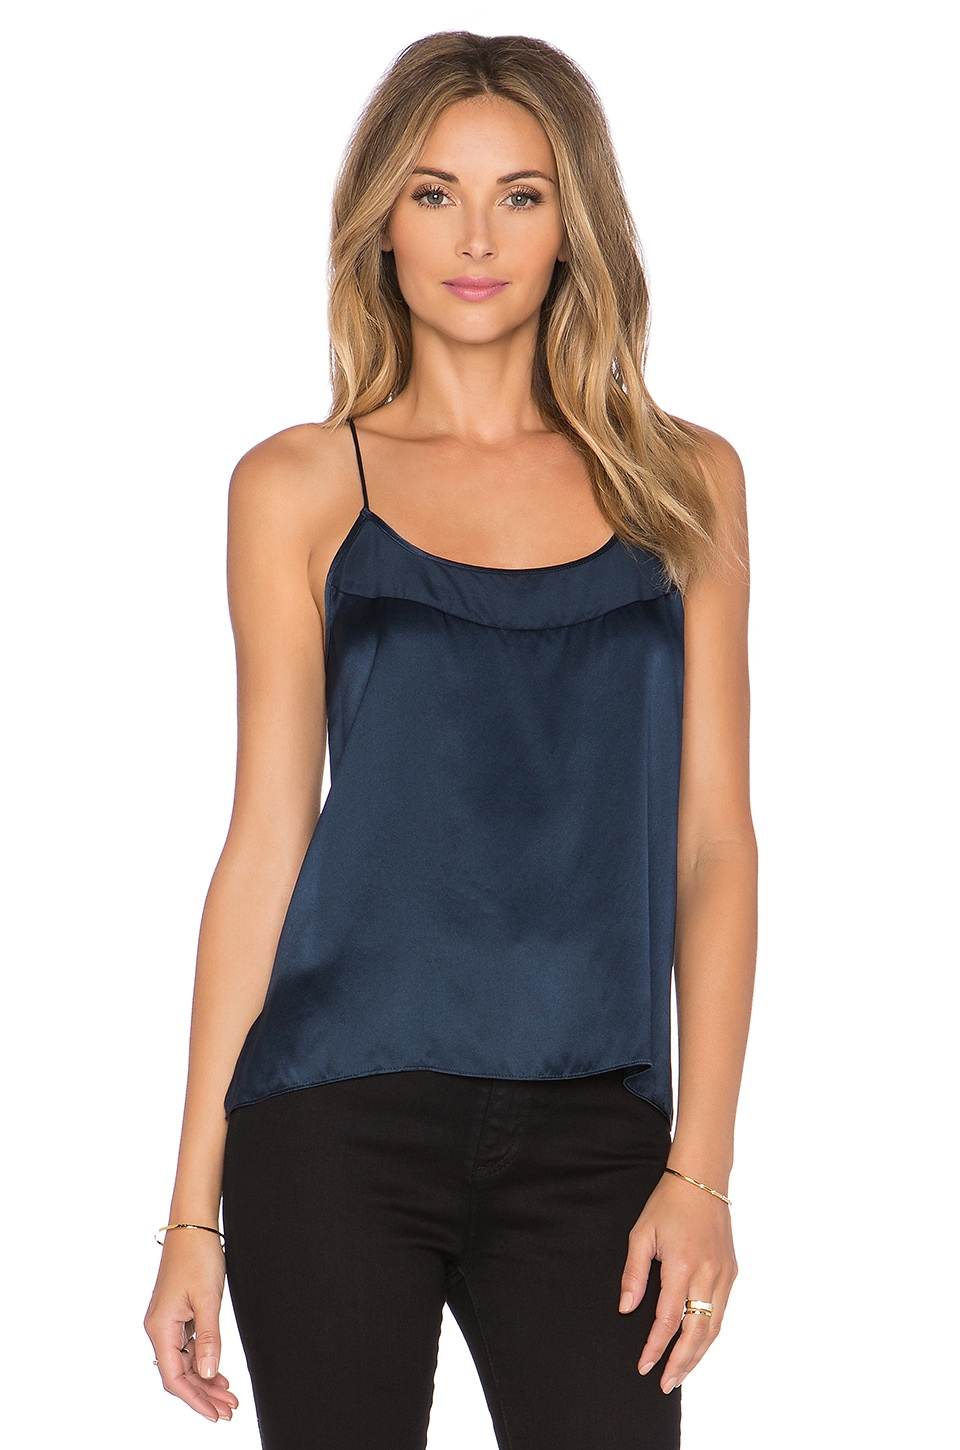 CAMI NYC The Alexa Cami in Navy